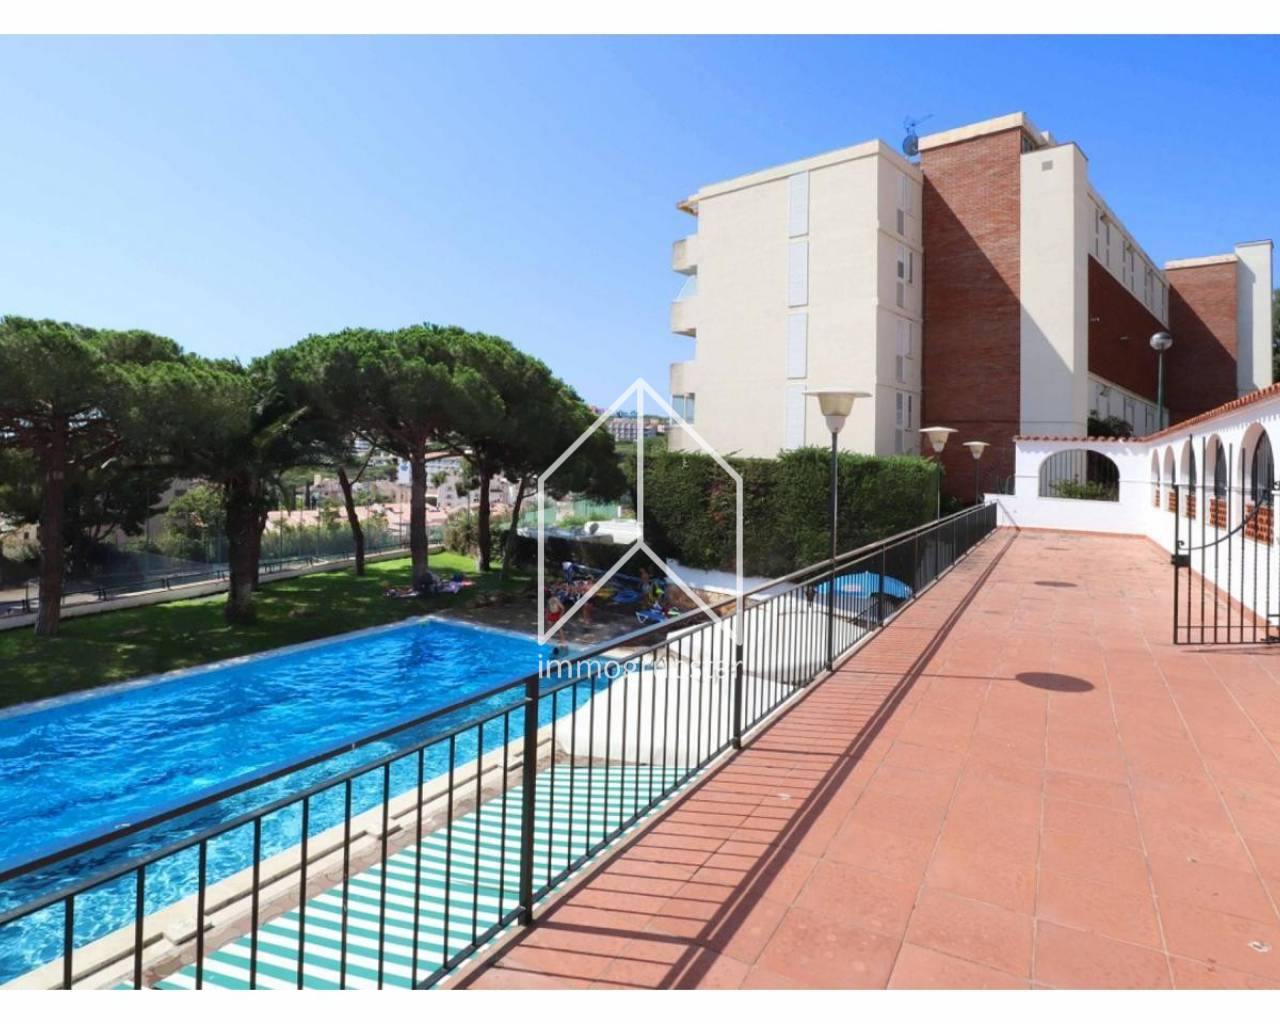 Appartement - Resale - S'agaro - S'agaro